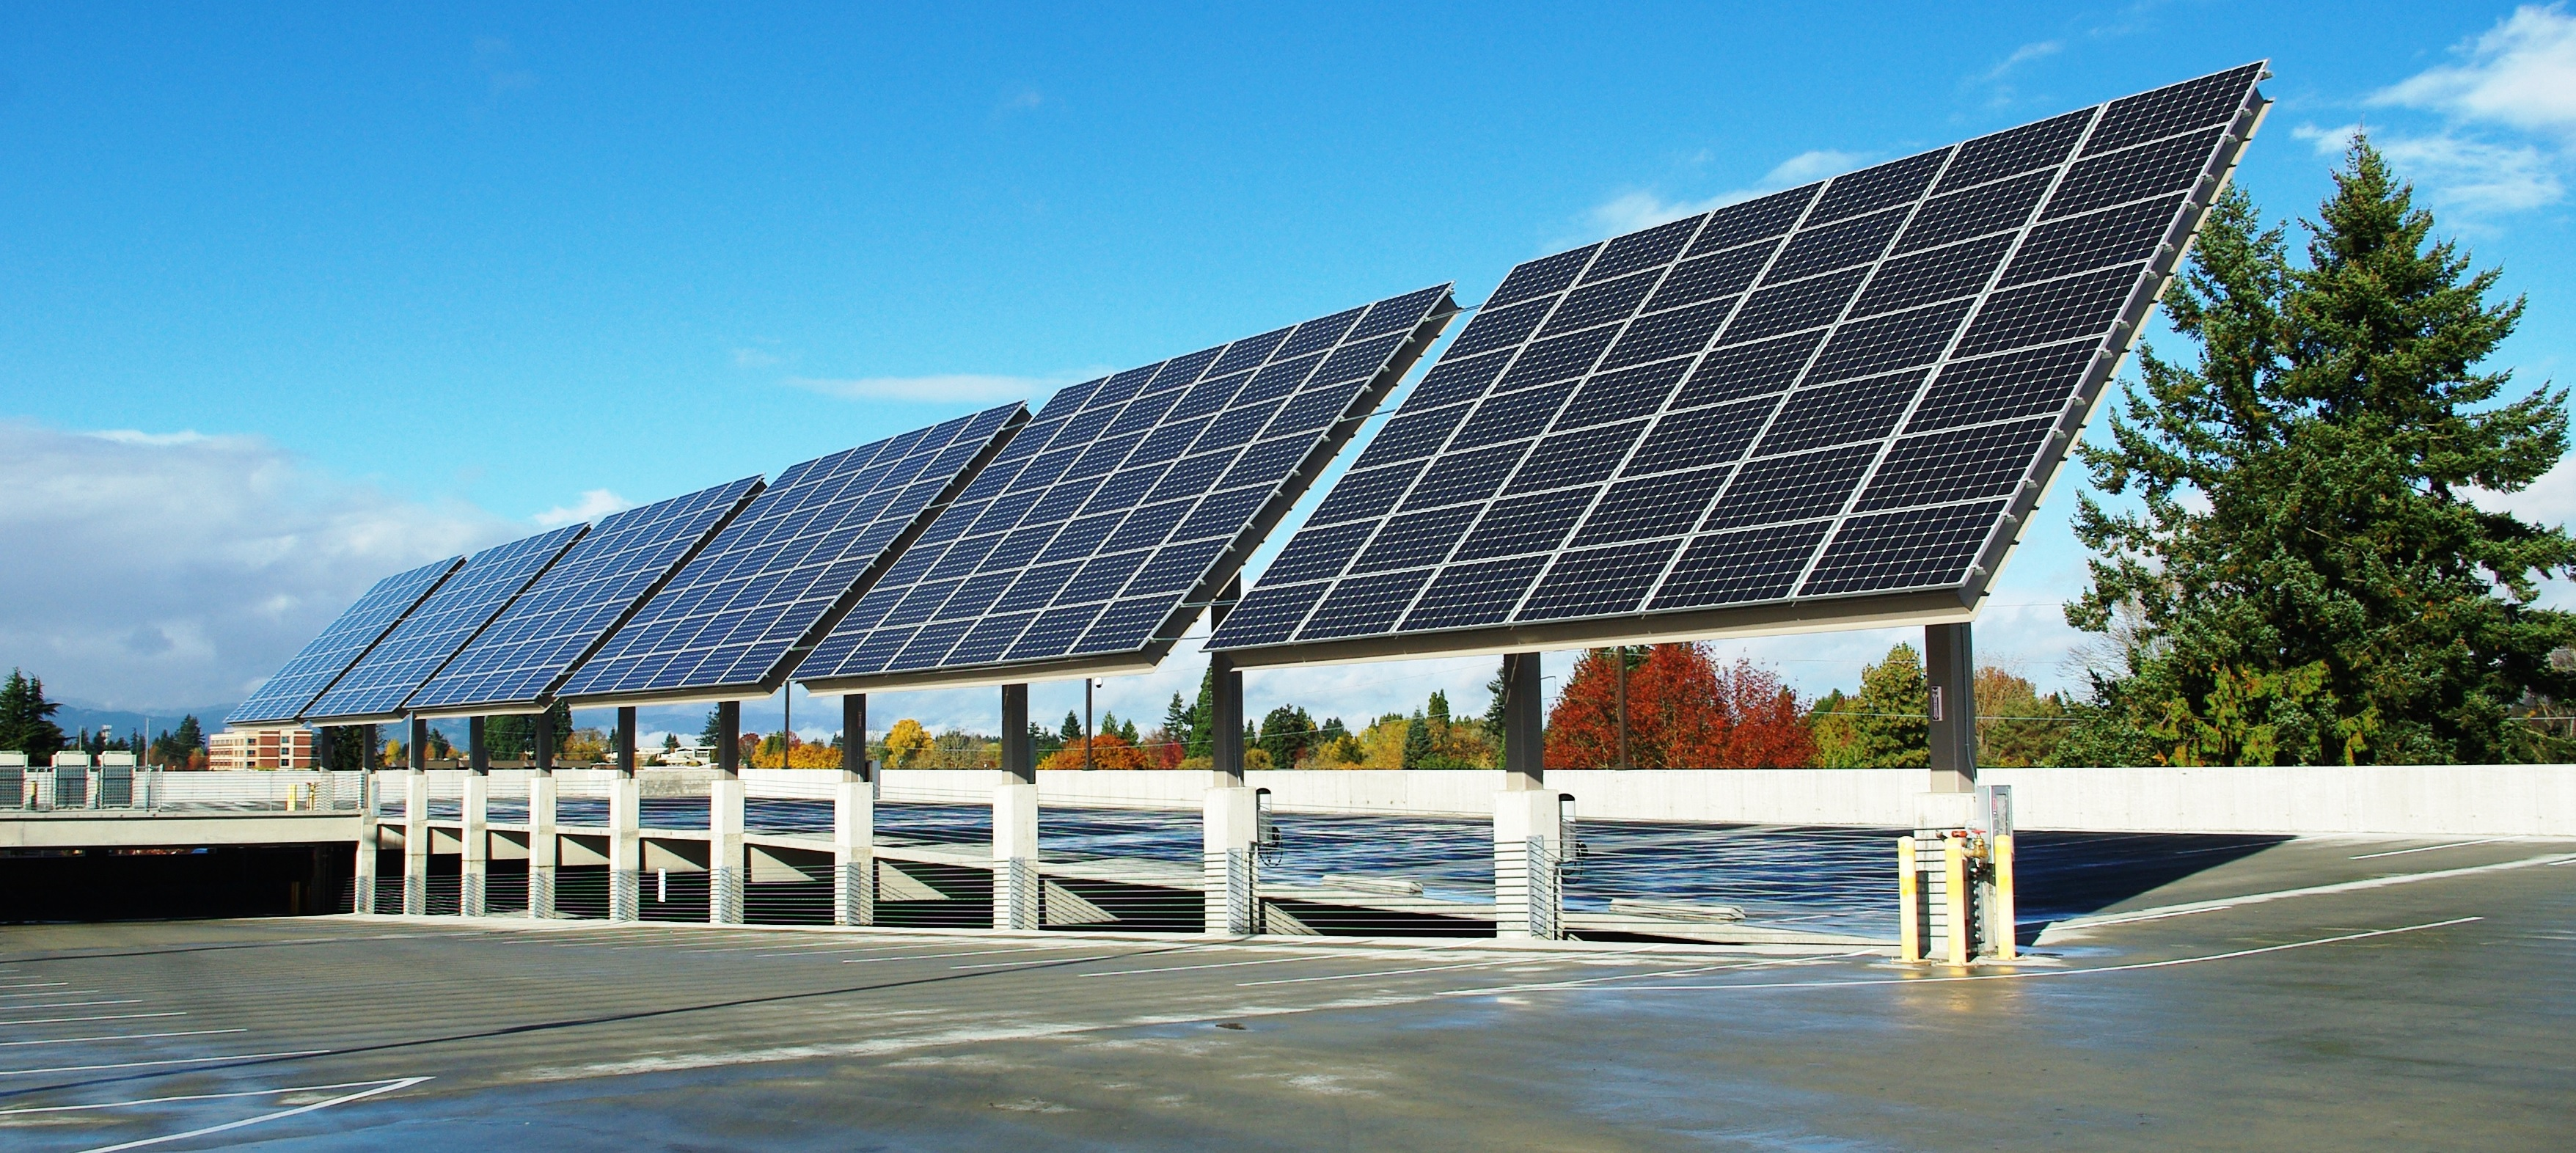 Challenges for solar heating in India